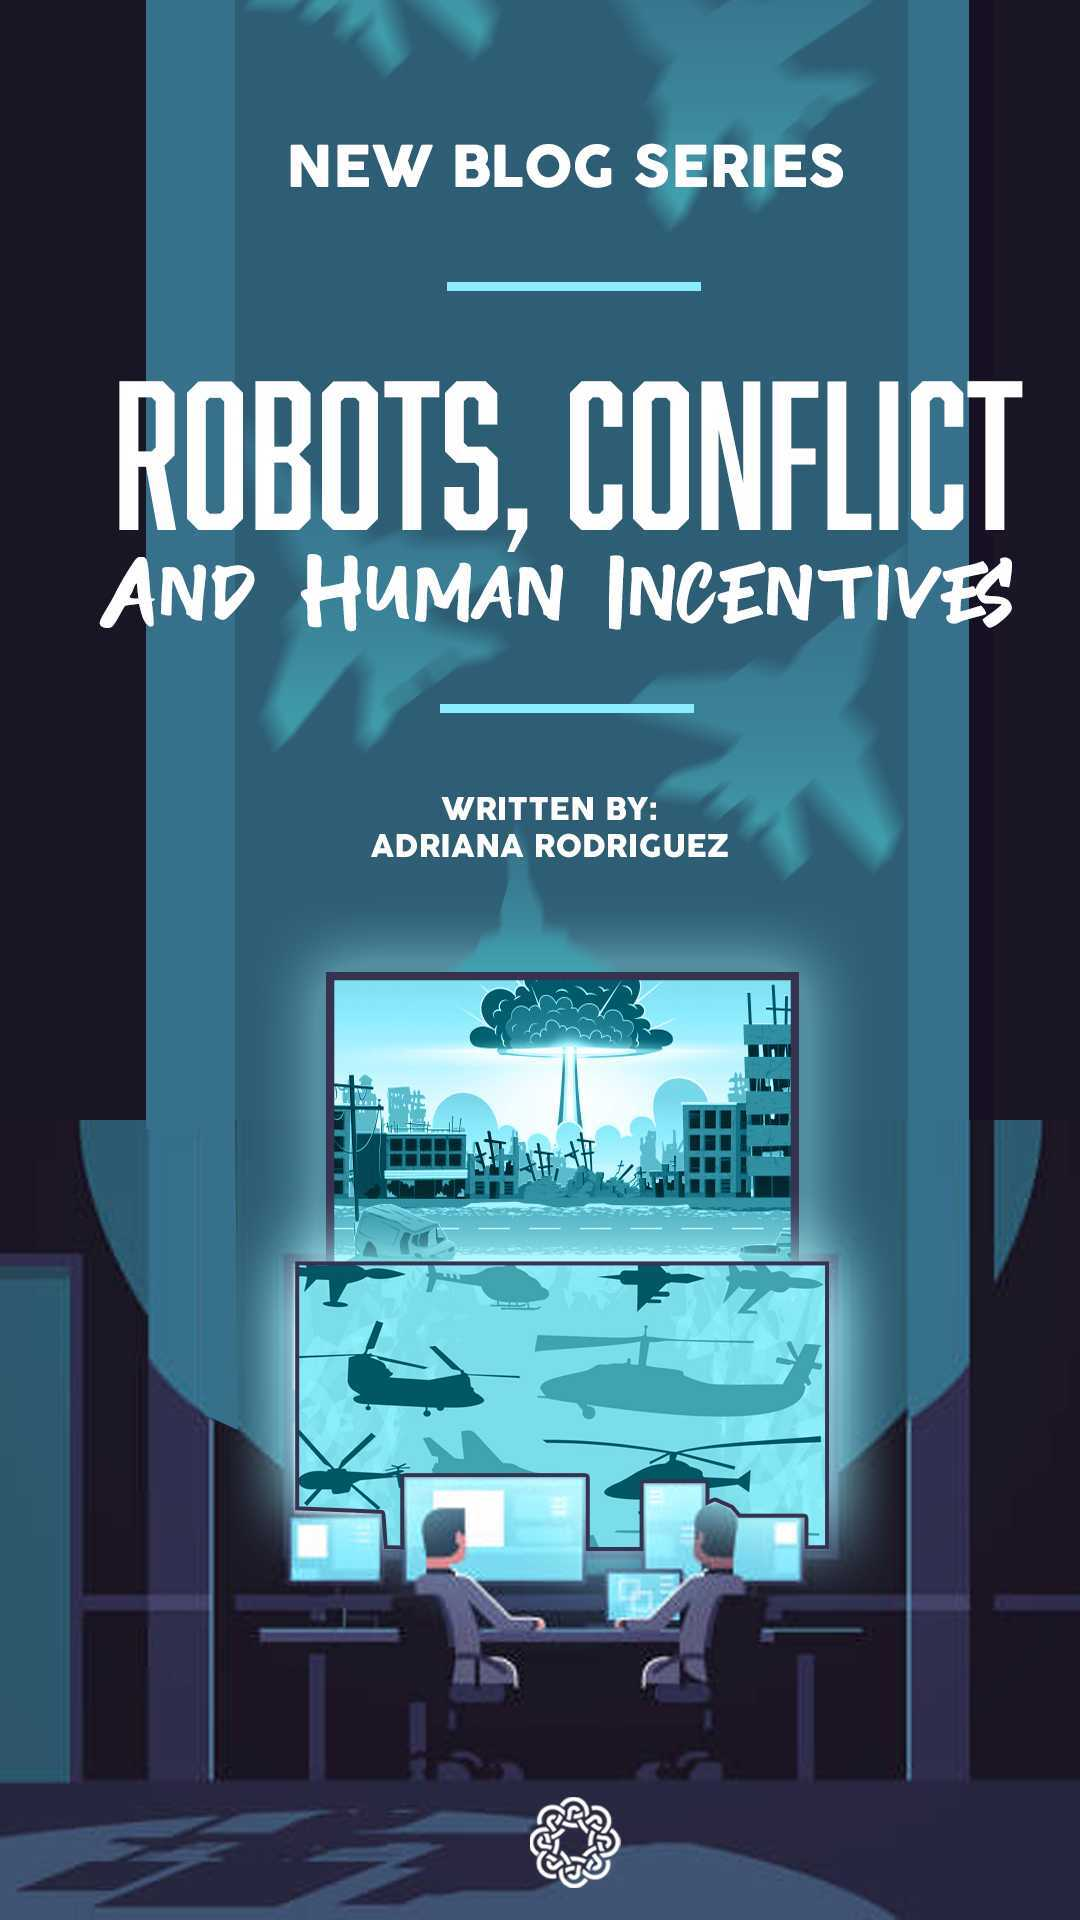 Robots in Conflicts